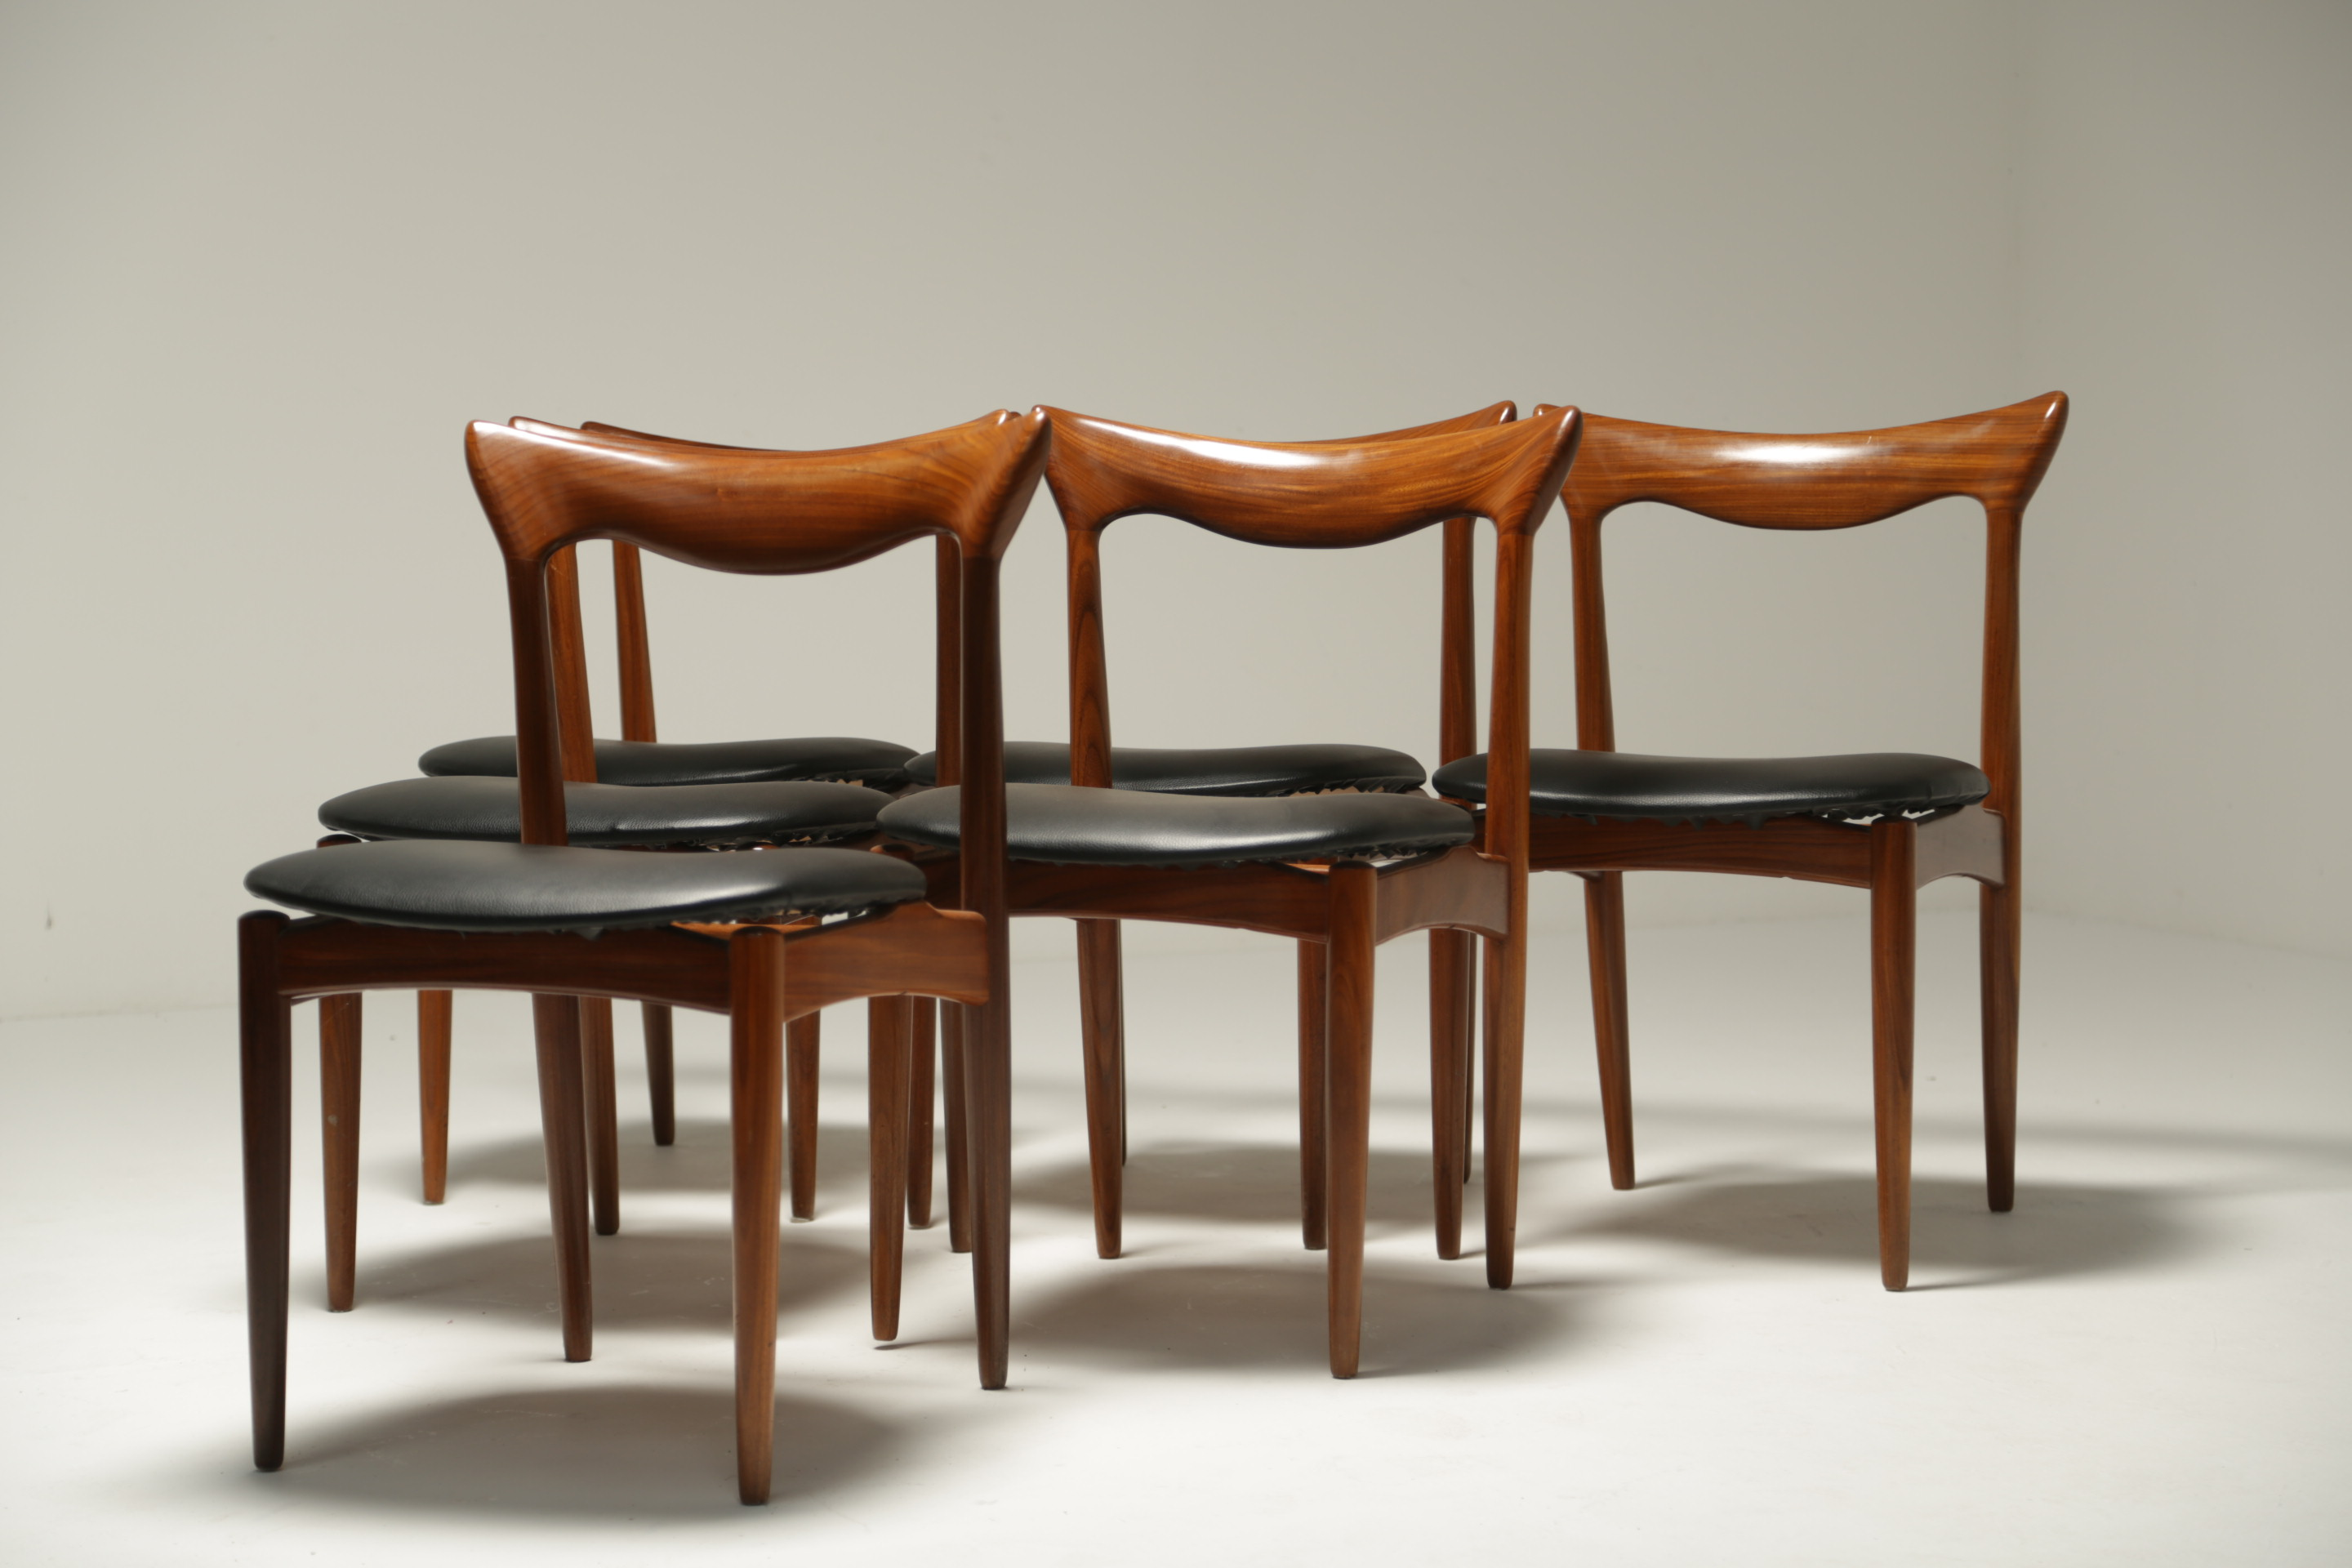 Teak Dining Chairs by H.W. Klein for Bramin. Set of 6.